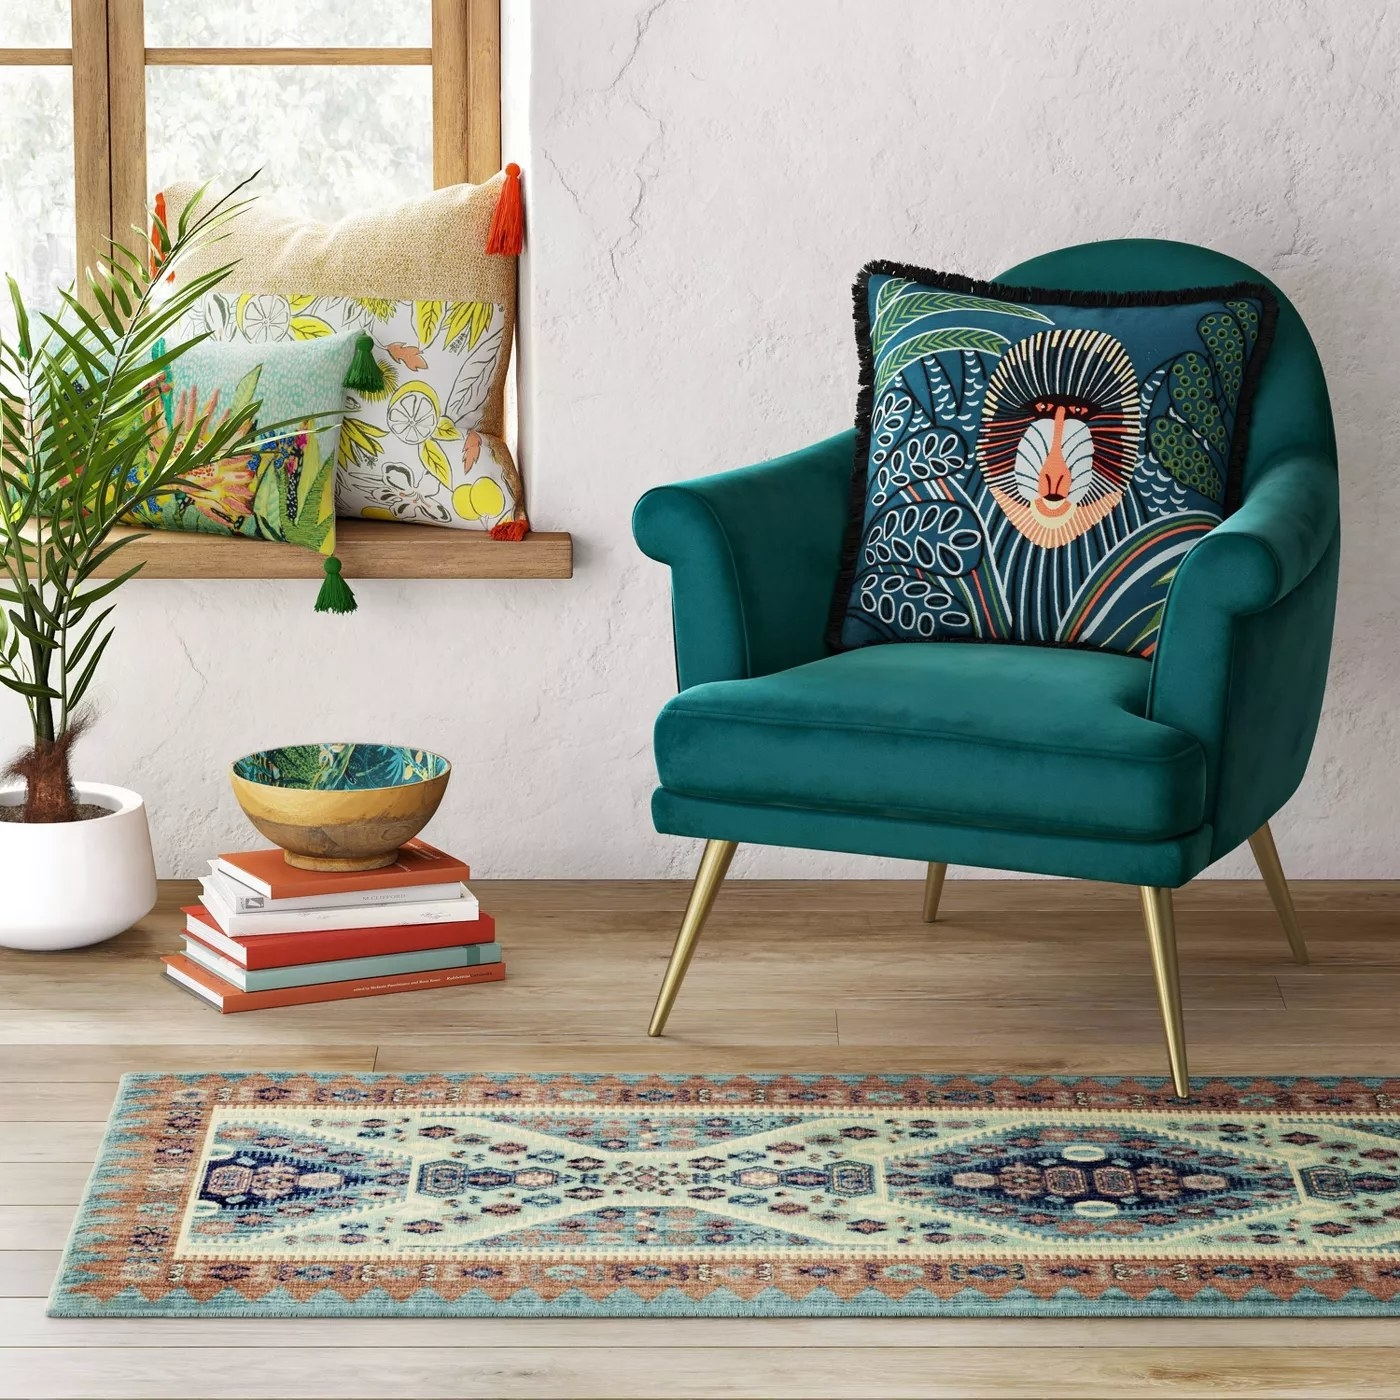 The colorful runner in a living room